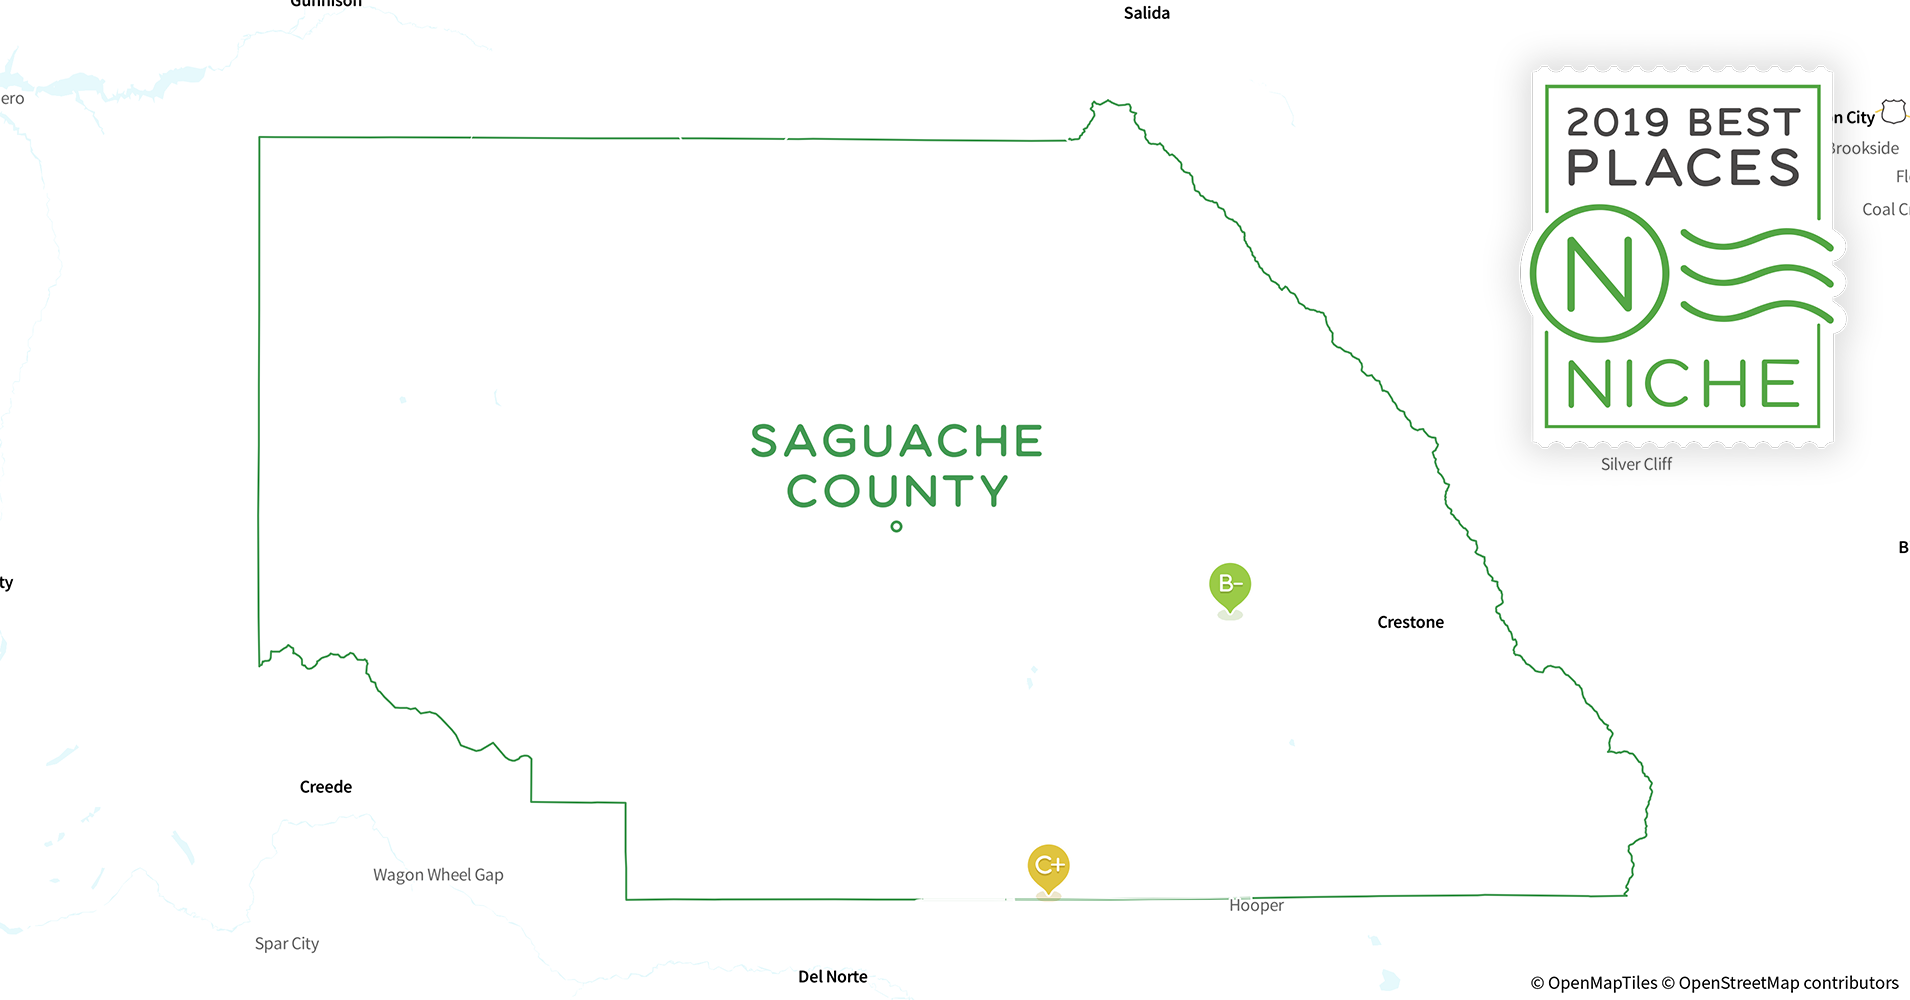 2019 Best Places To Live In Saguache County Co Niche